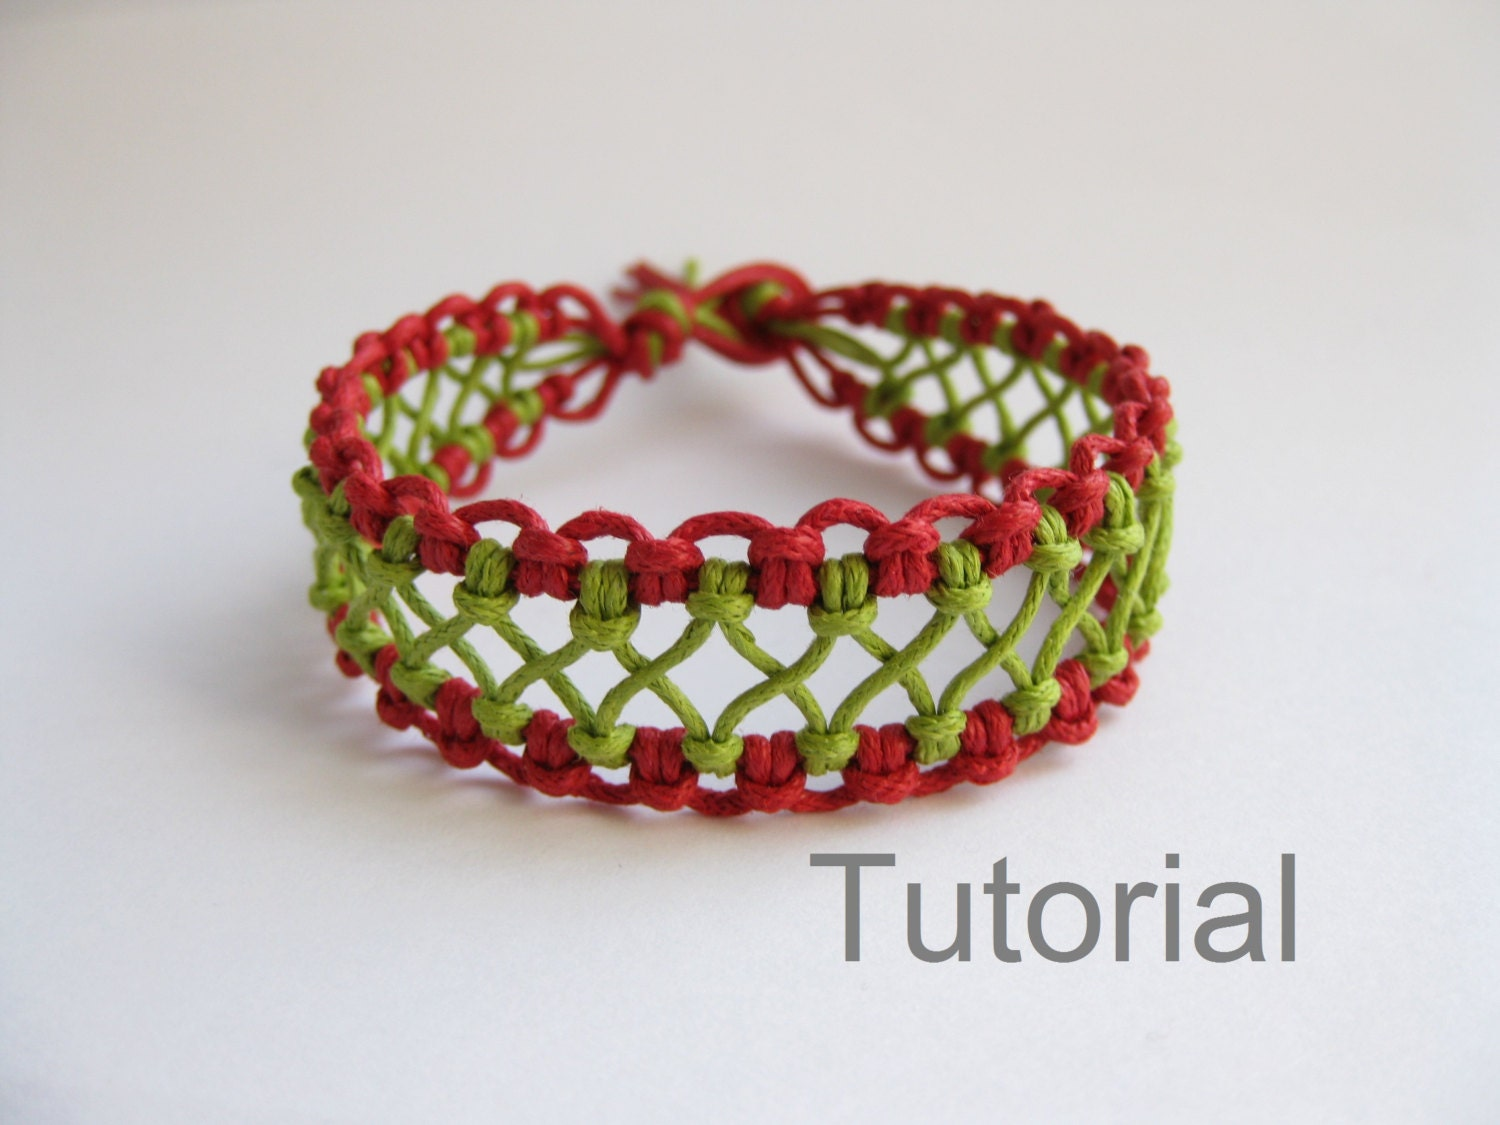 technique watch youtube bracelet knotting knotted diy cord tutorial bead